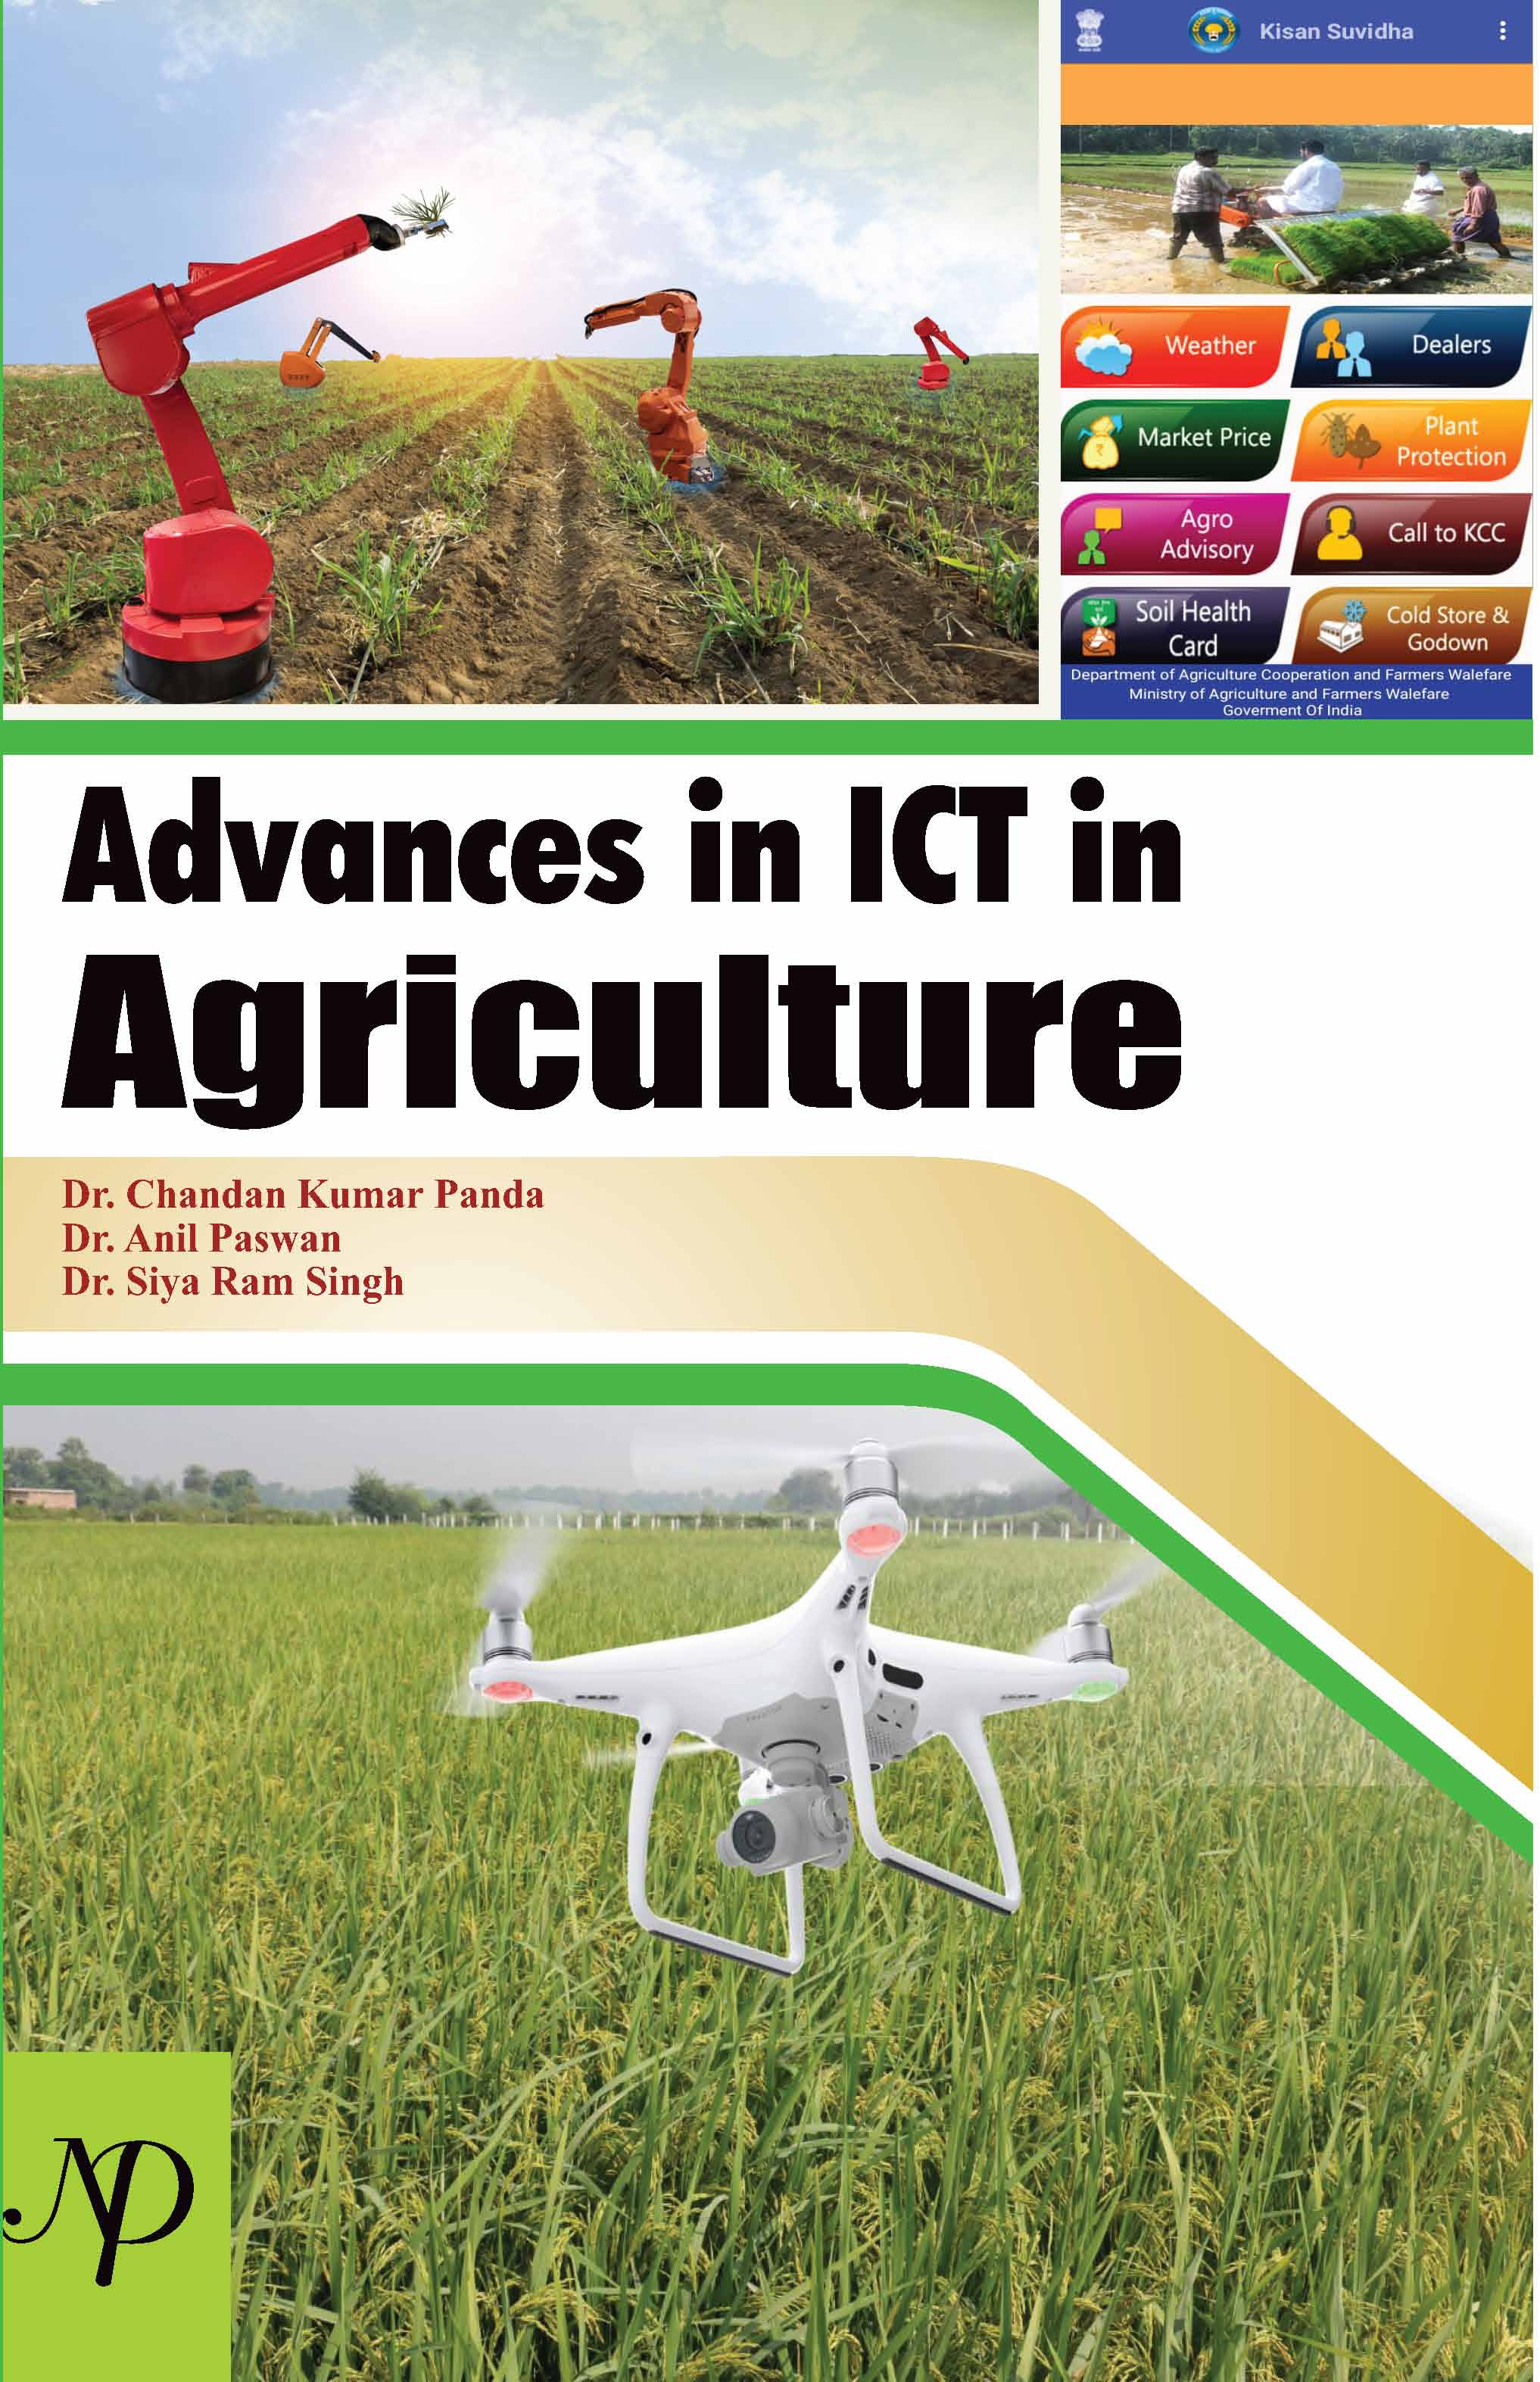 Advances in ICT in Agriculture.pdf.jpg